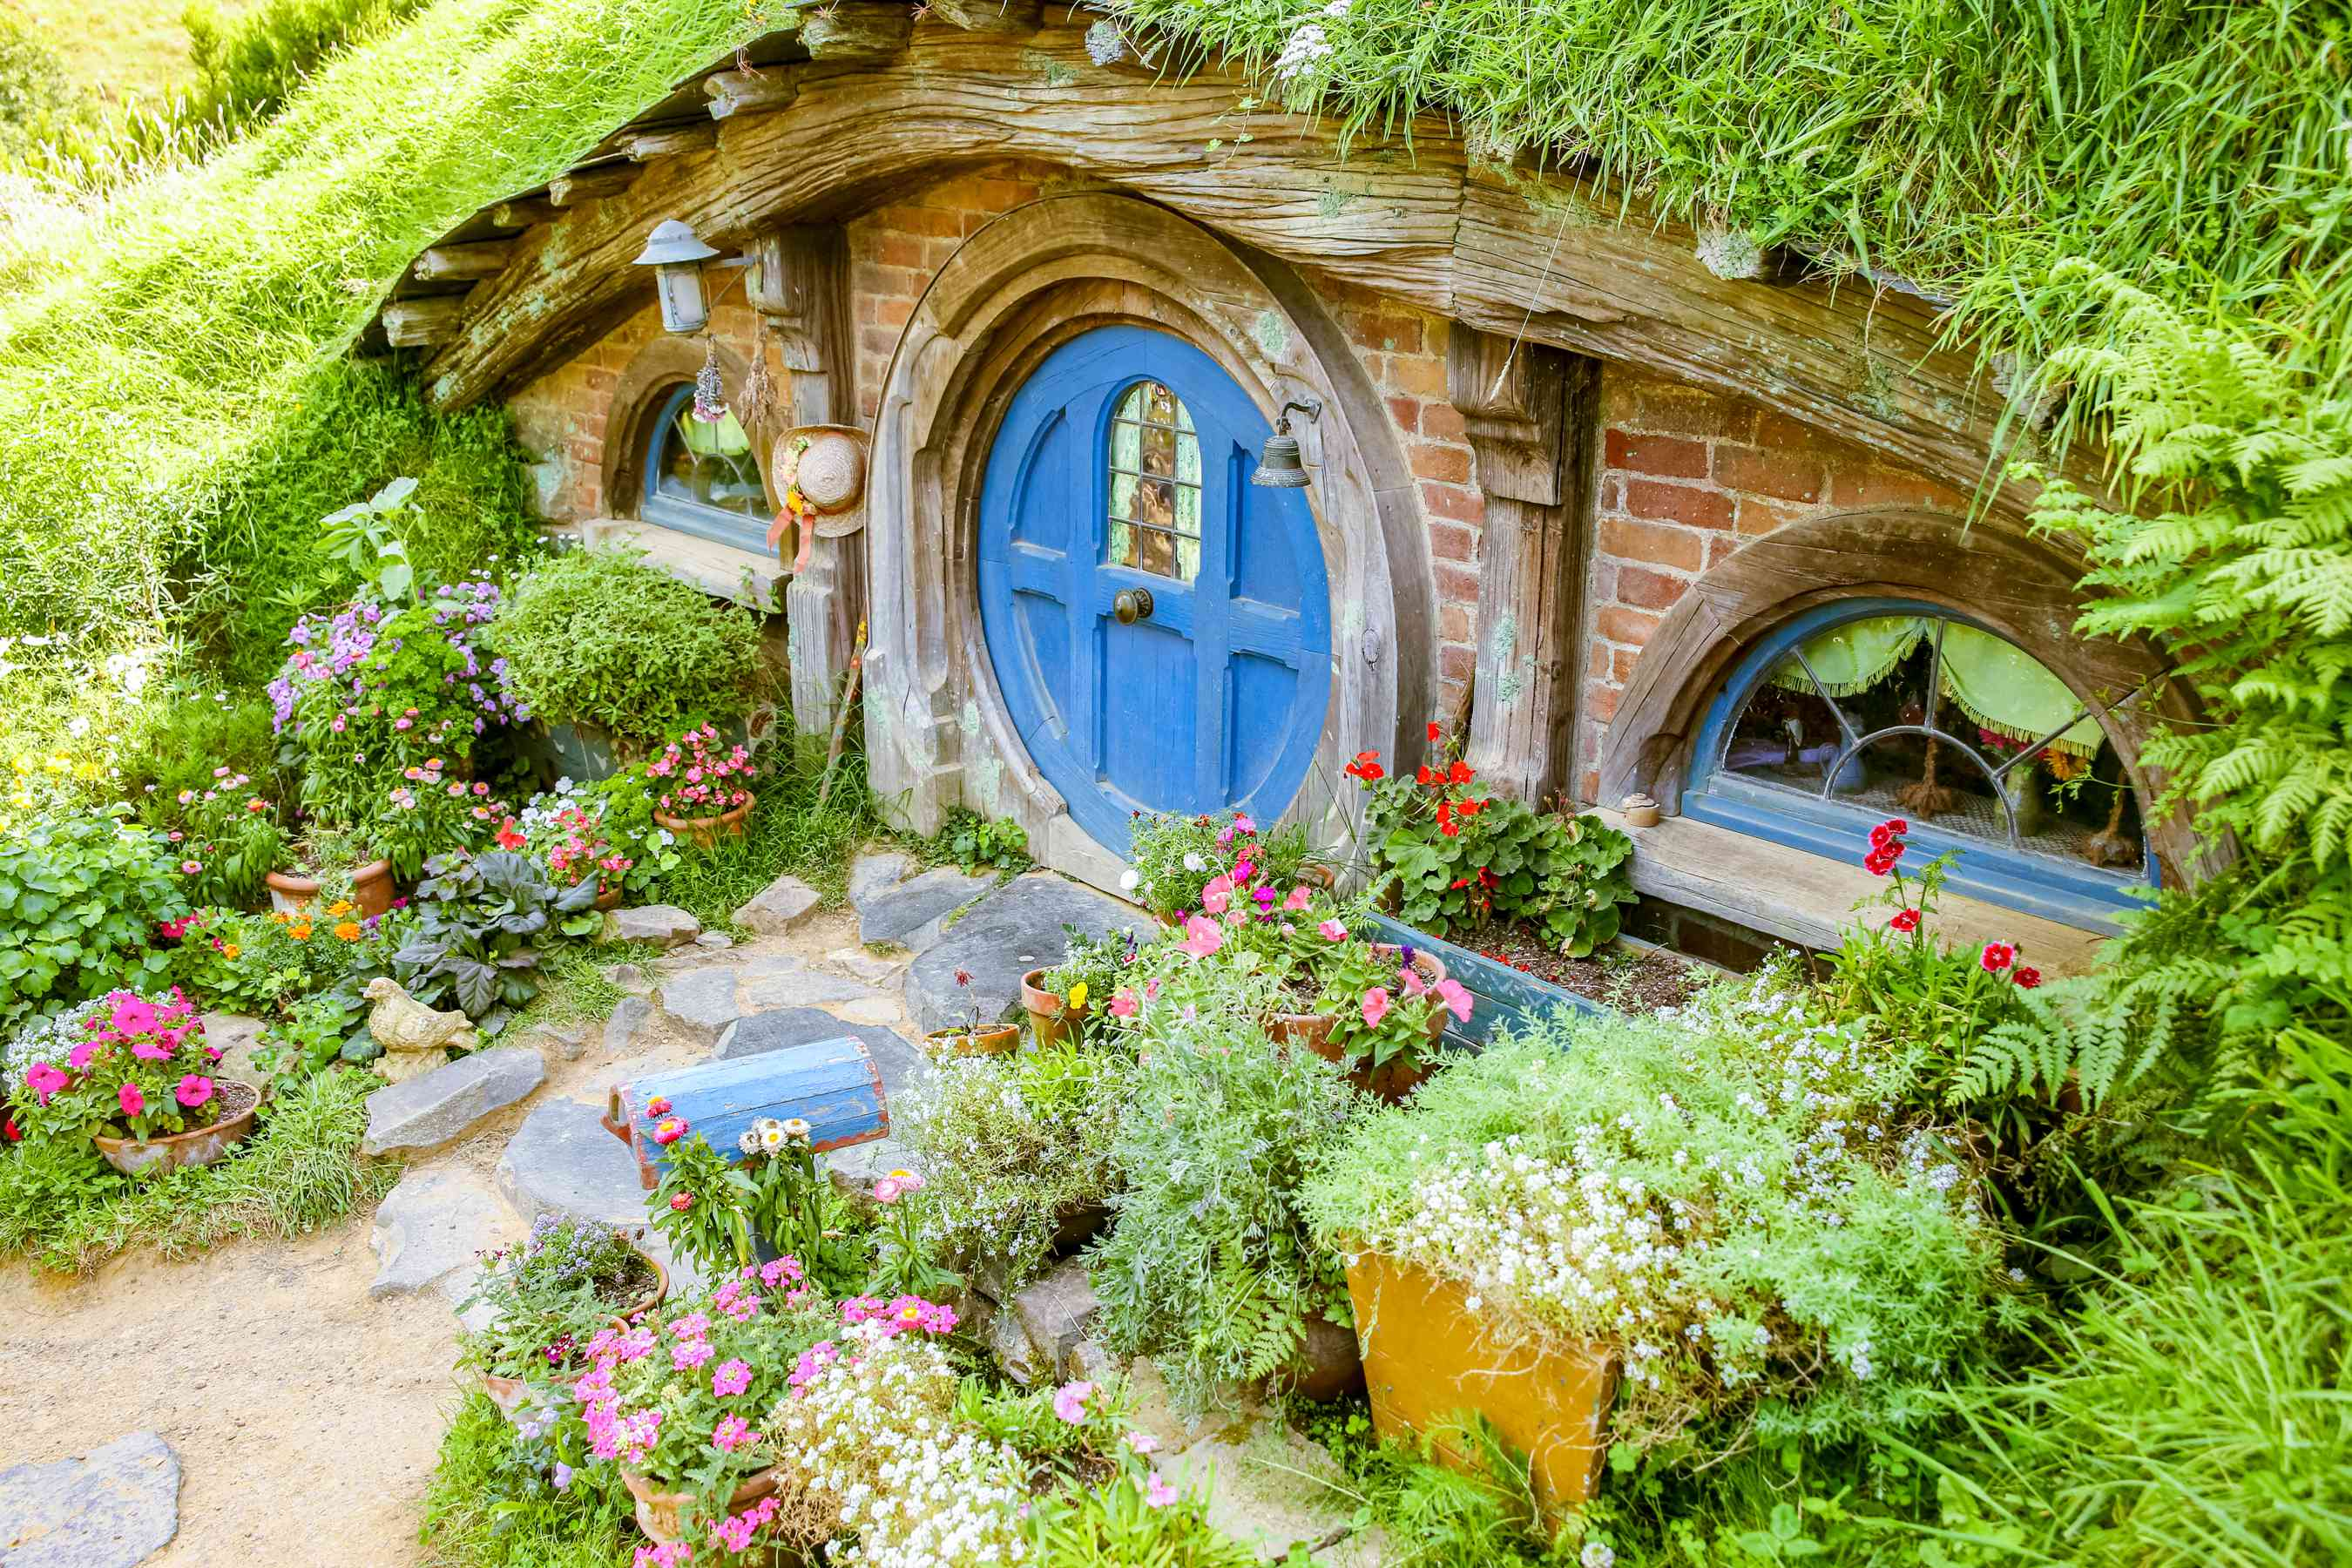 A small house in hobbiton